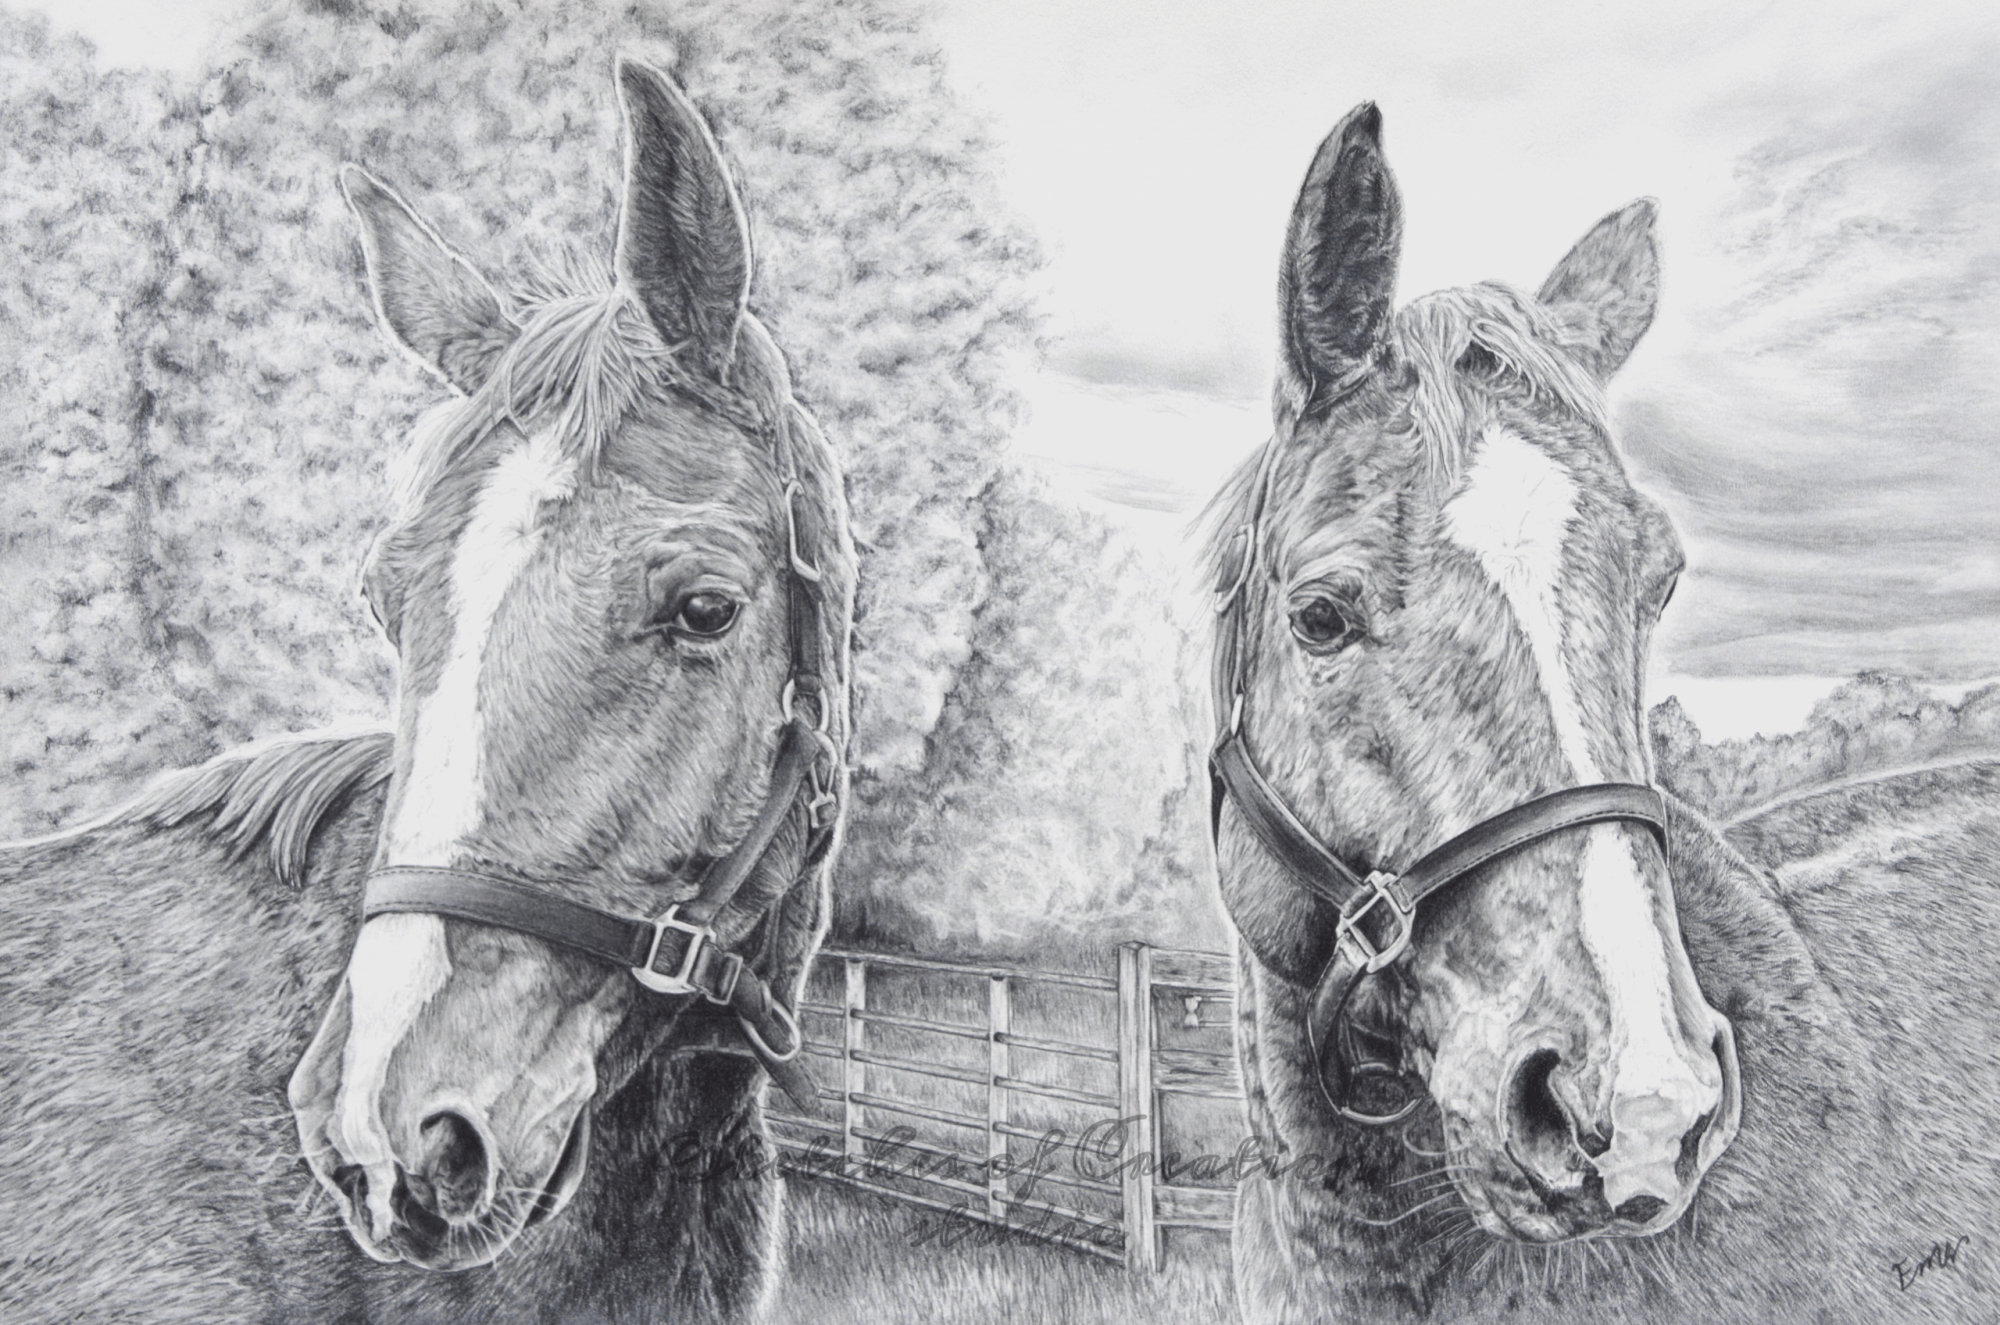 'Beste Guess and Fabuleste' a drawing of two dressage show horses. 12x18 inches. Completed January 2019